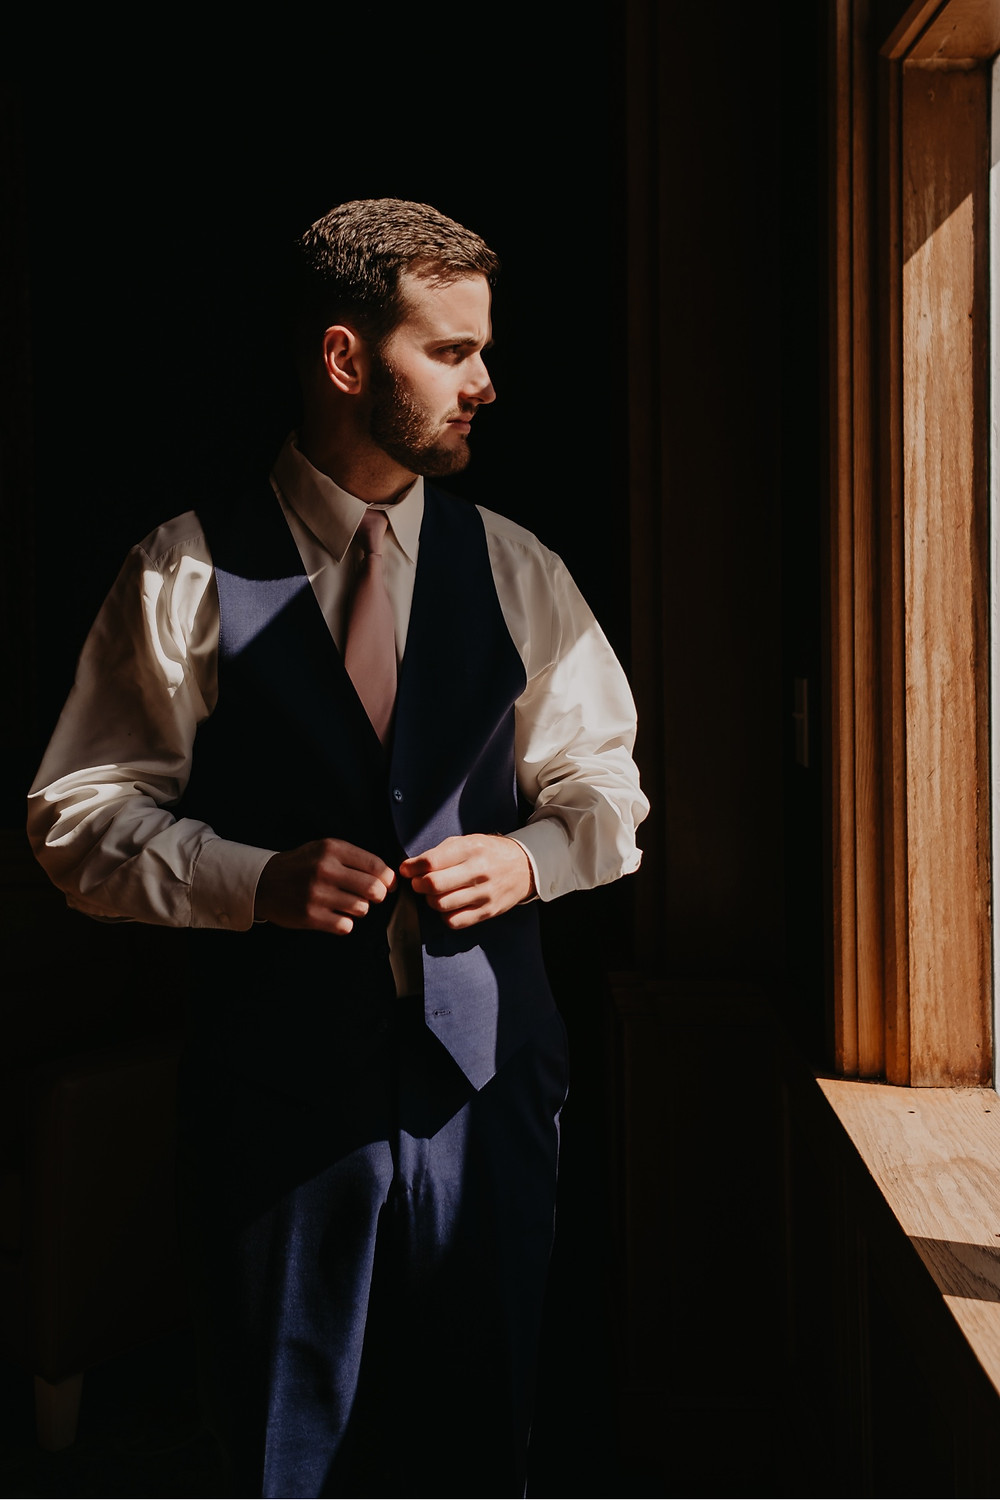 Groom getting dressed in suit for wedding. Photographed by Nicole Leanne Photography.